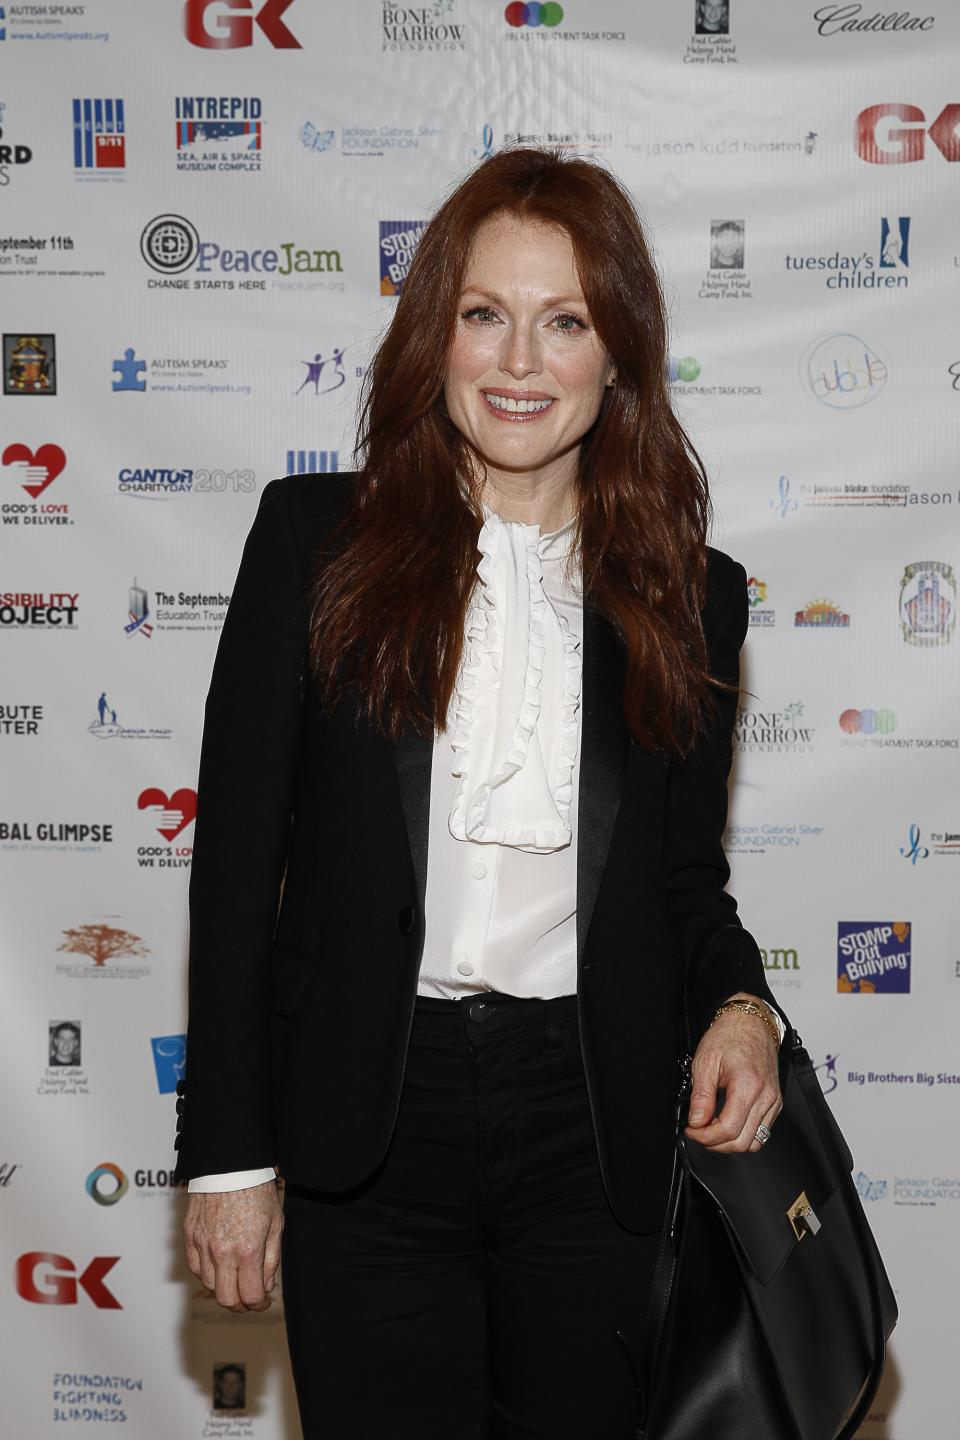 Julianne Moore arrives at the Annual Charity Day hosted by Cantor Fitzgerald and BGC Partners, on Wednesday, Sept. 11, 2013, in New York. (Photo by Mark Von Holden/Invision/AP)